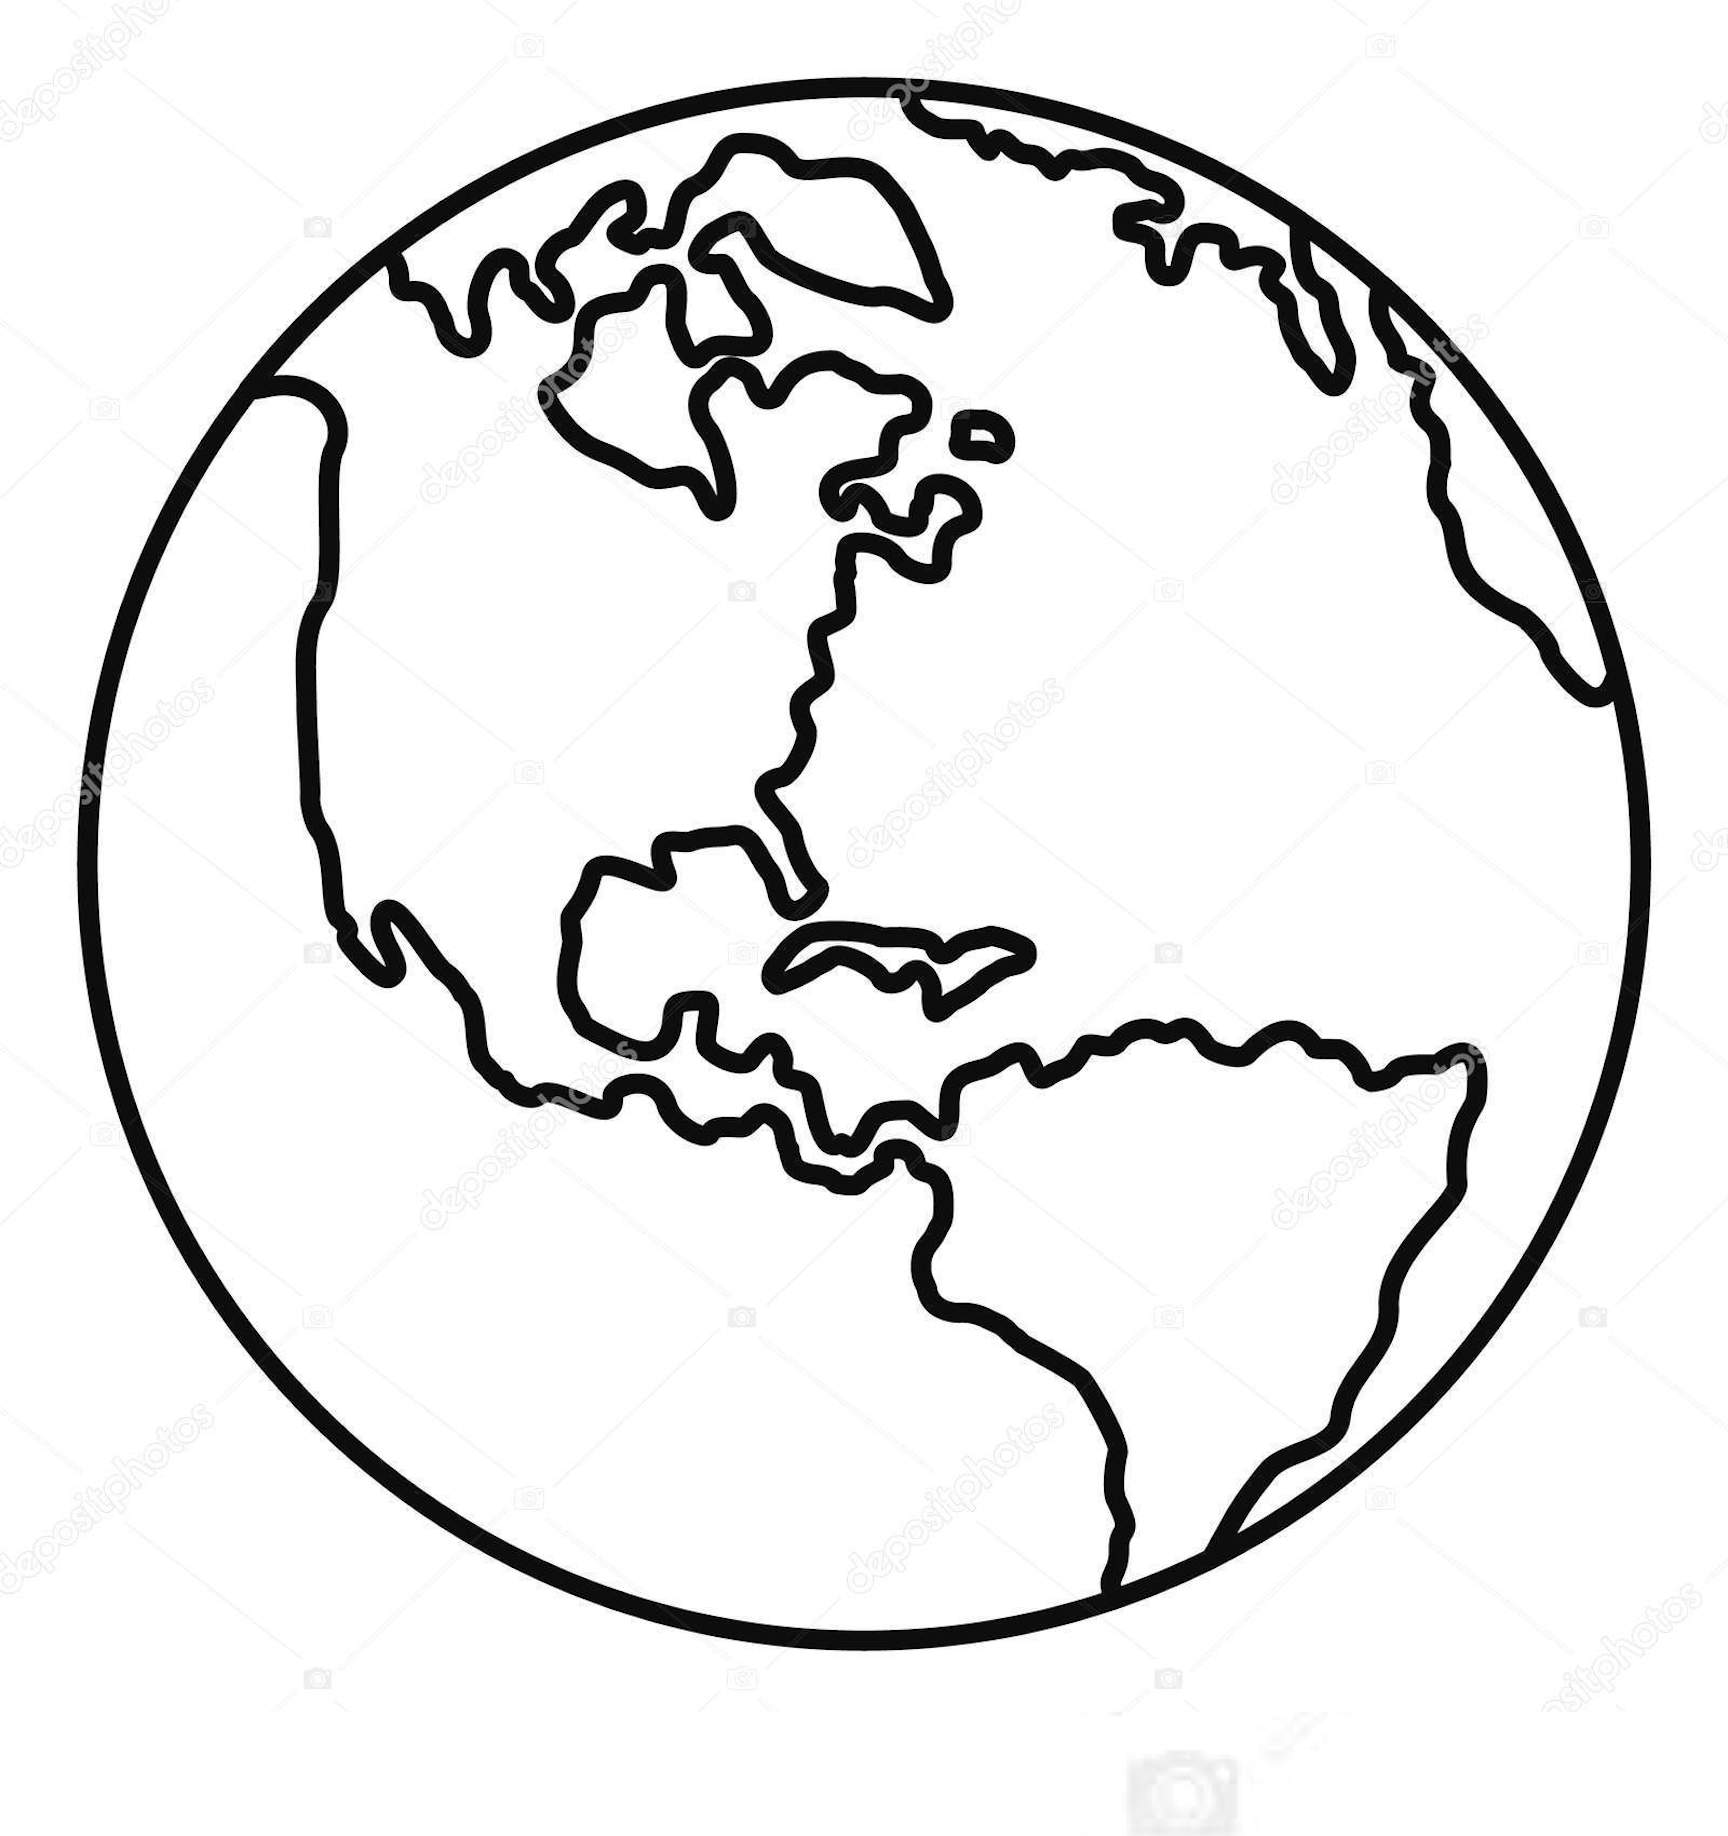 earth coloring pages free earth globe coloring page wecoloringpage 067 earth free coloring pages earth